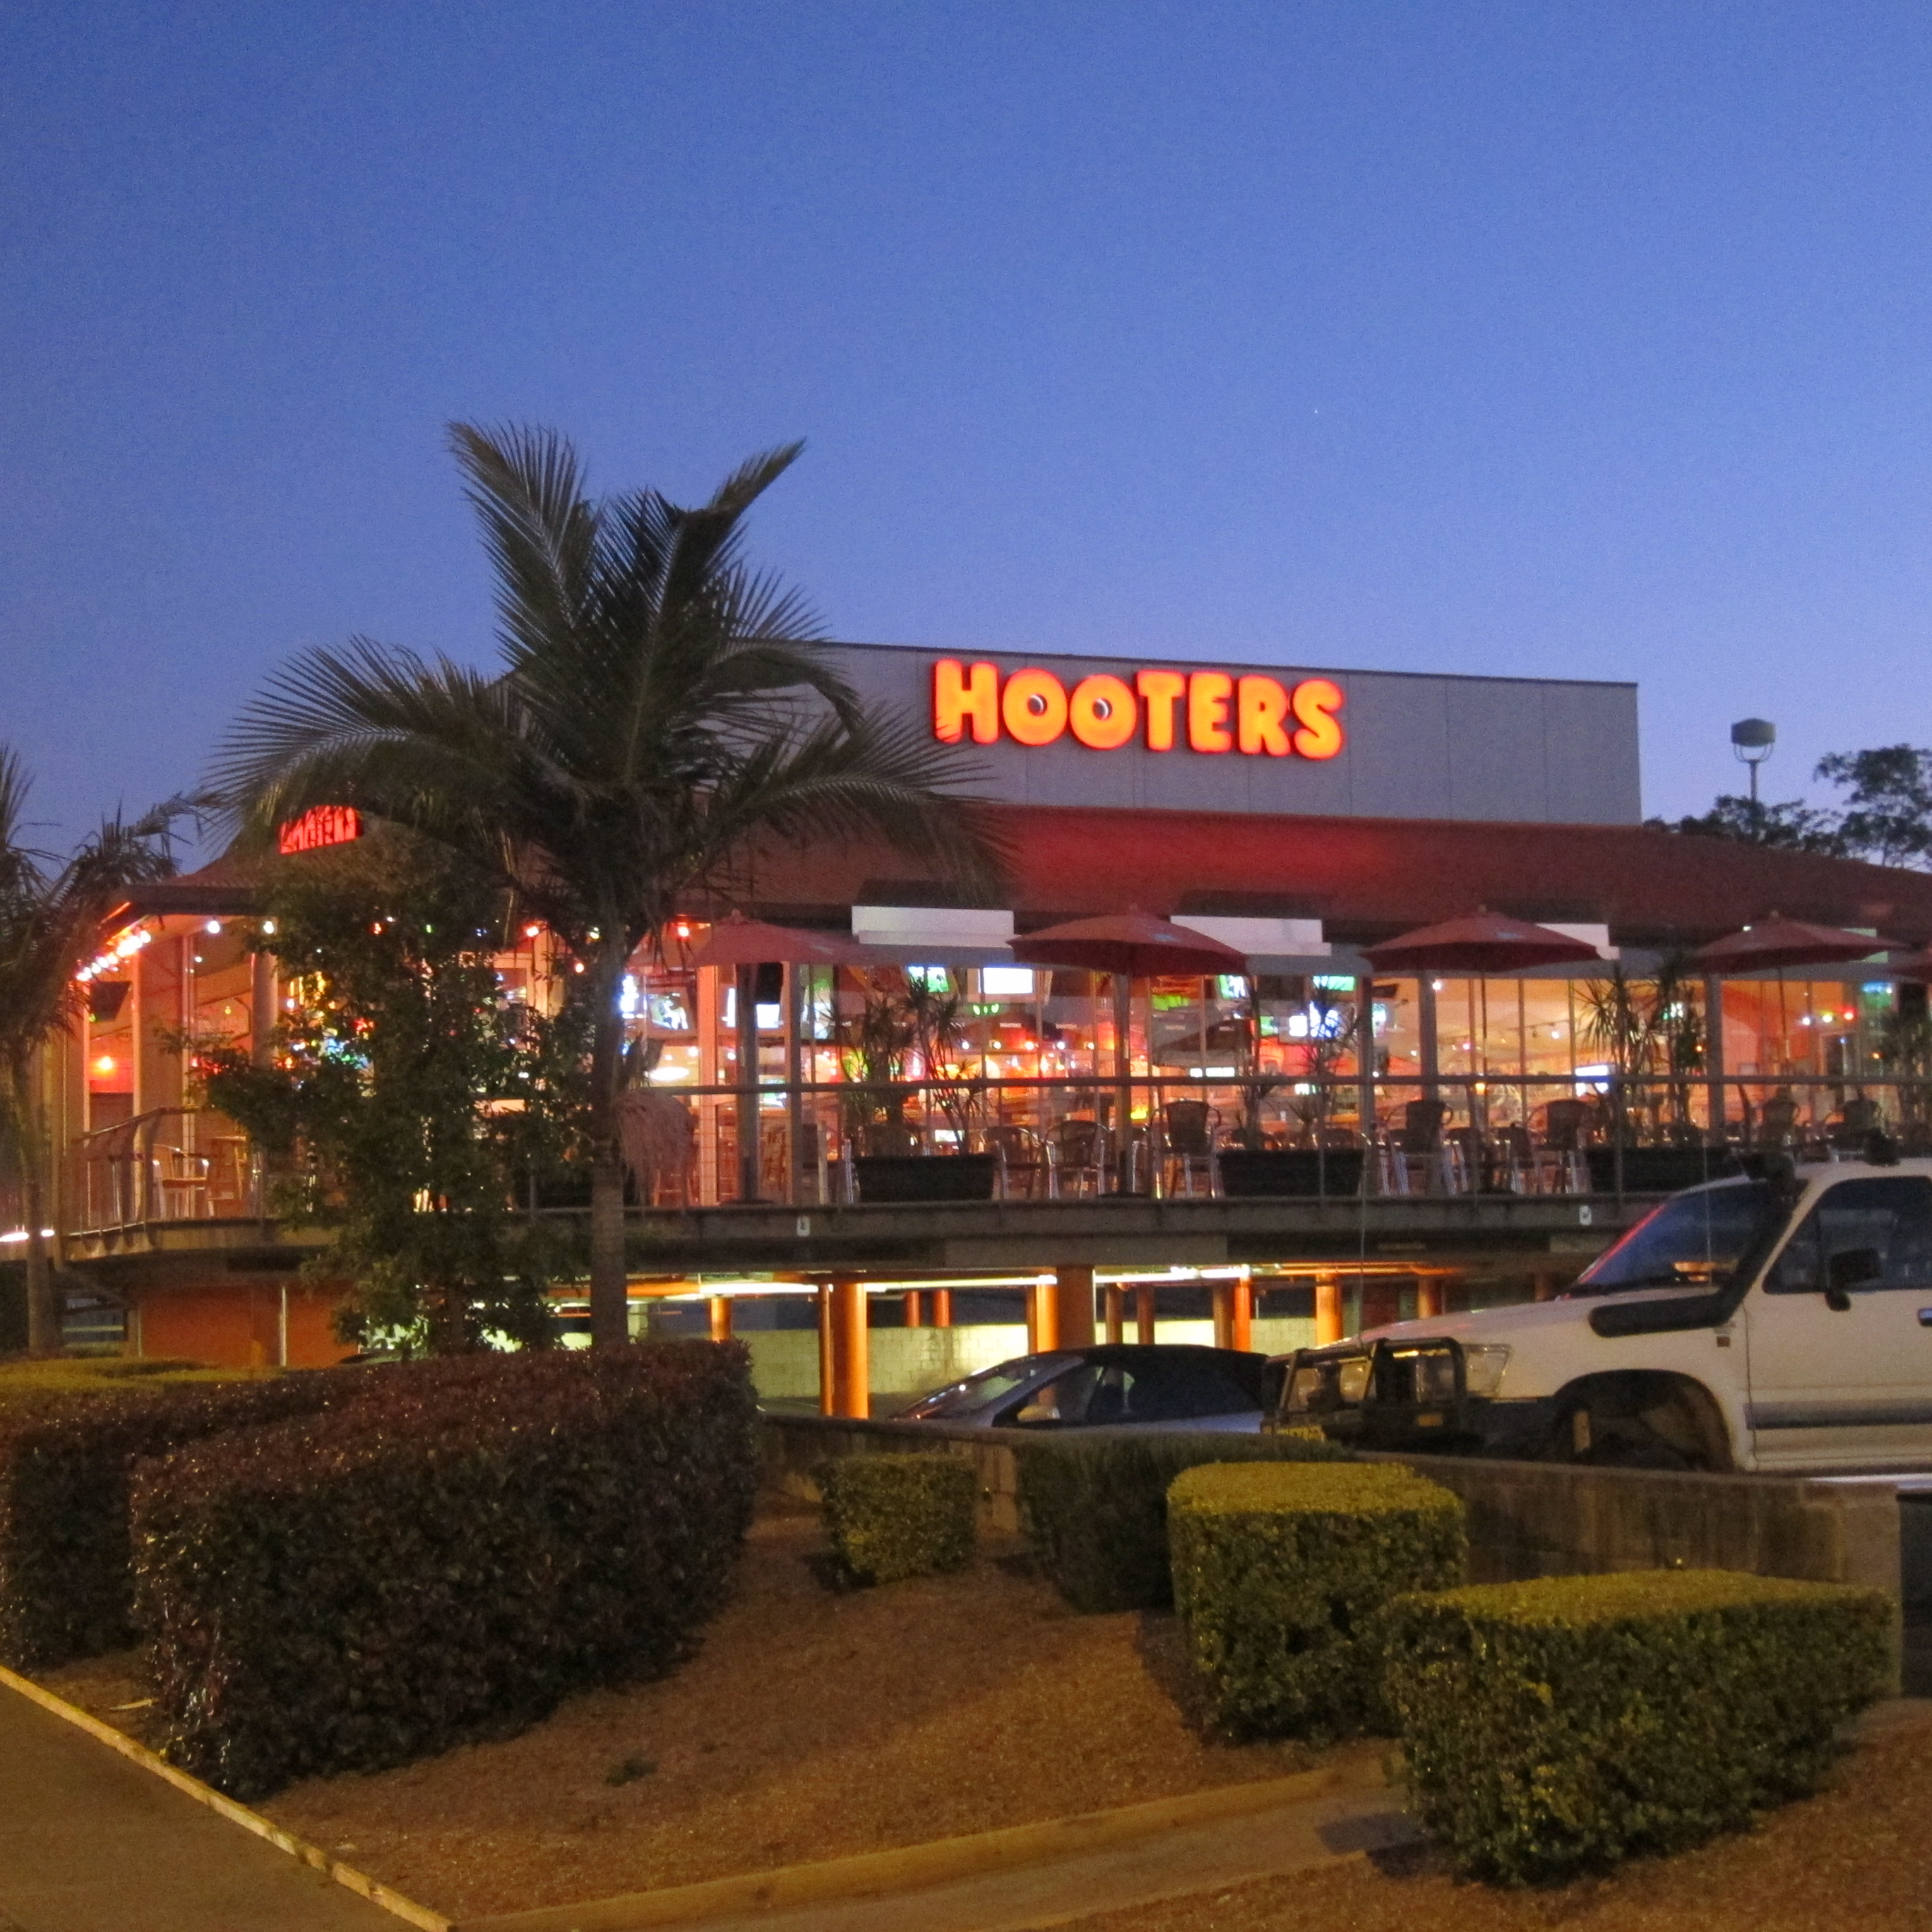 Hooters Restaurant Building To come to hooters with aHooters Restaurant Building